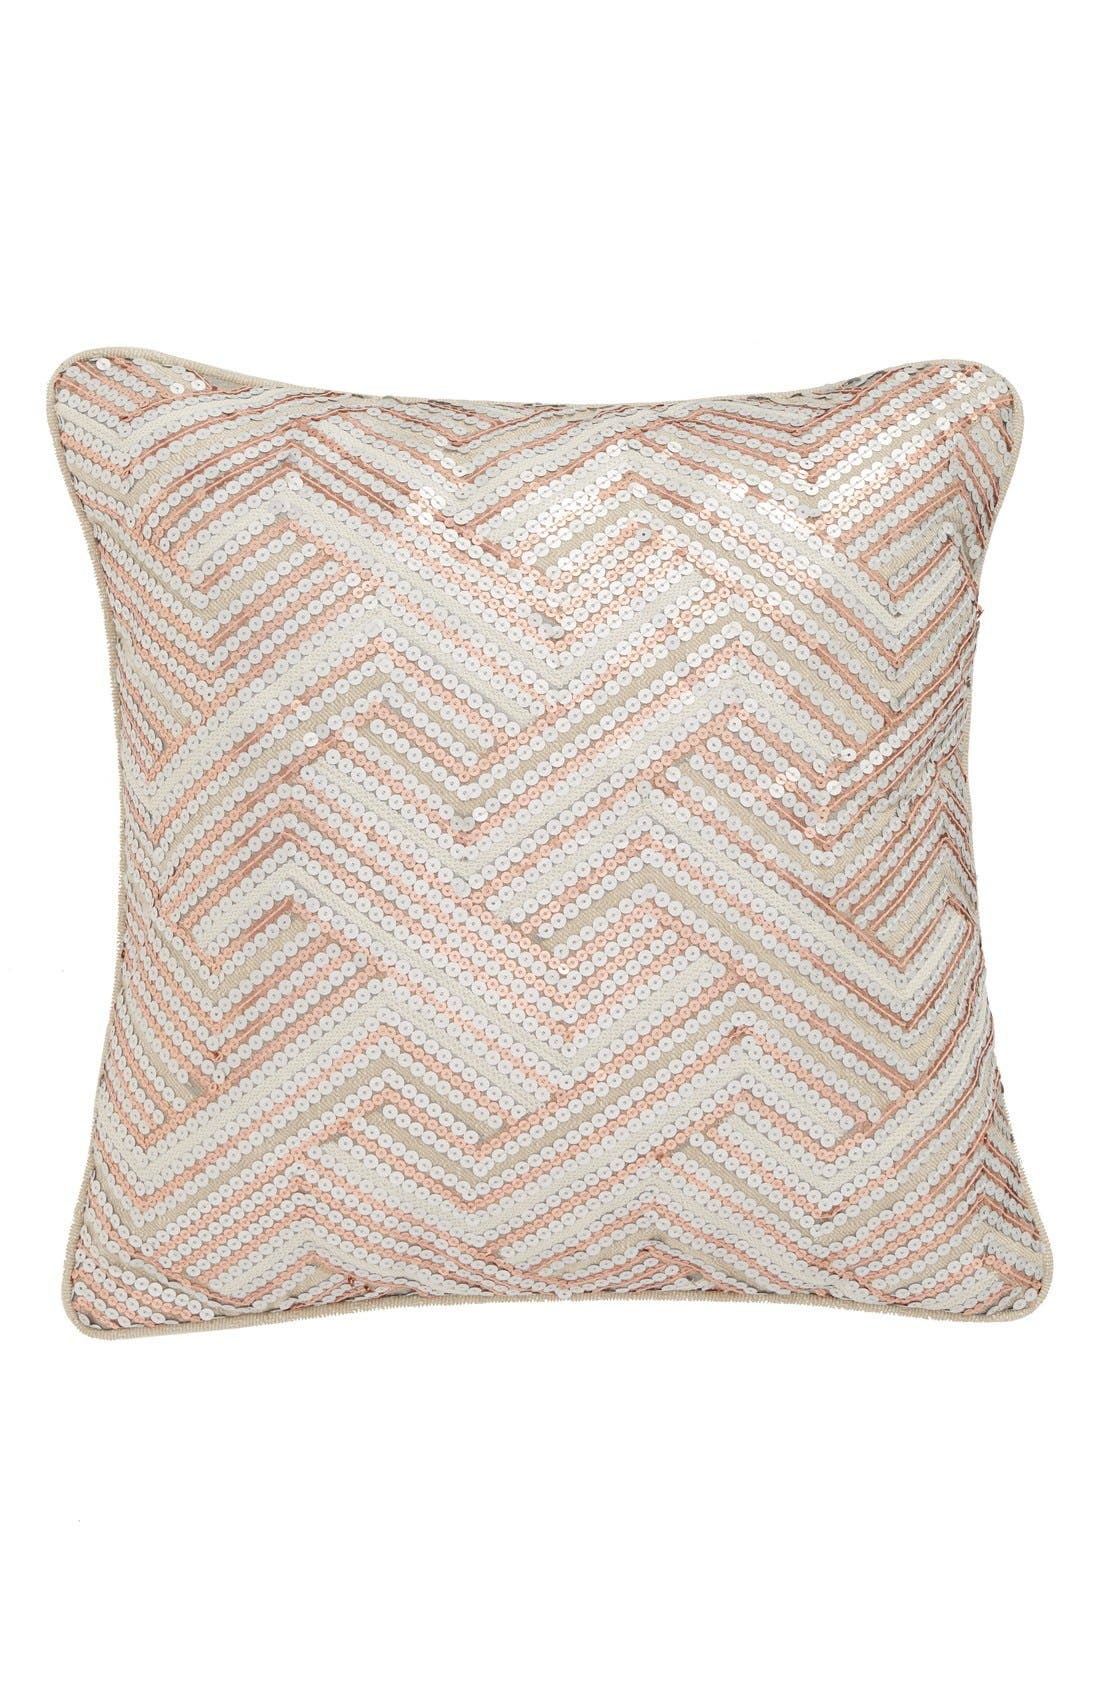 'Lona' Sequin Accent Pillow,                             Main thumbnail 1, color,                             Pink/ White/ Silver